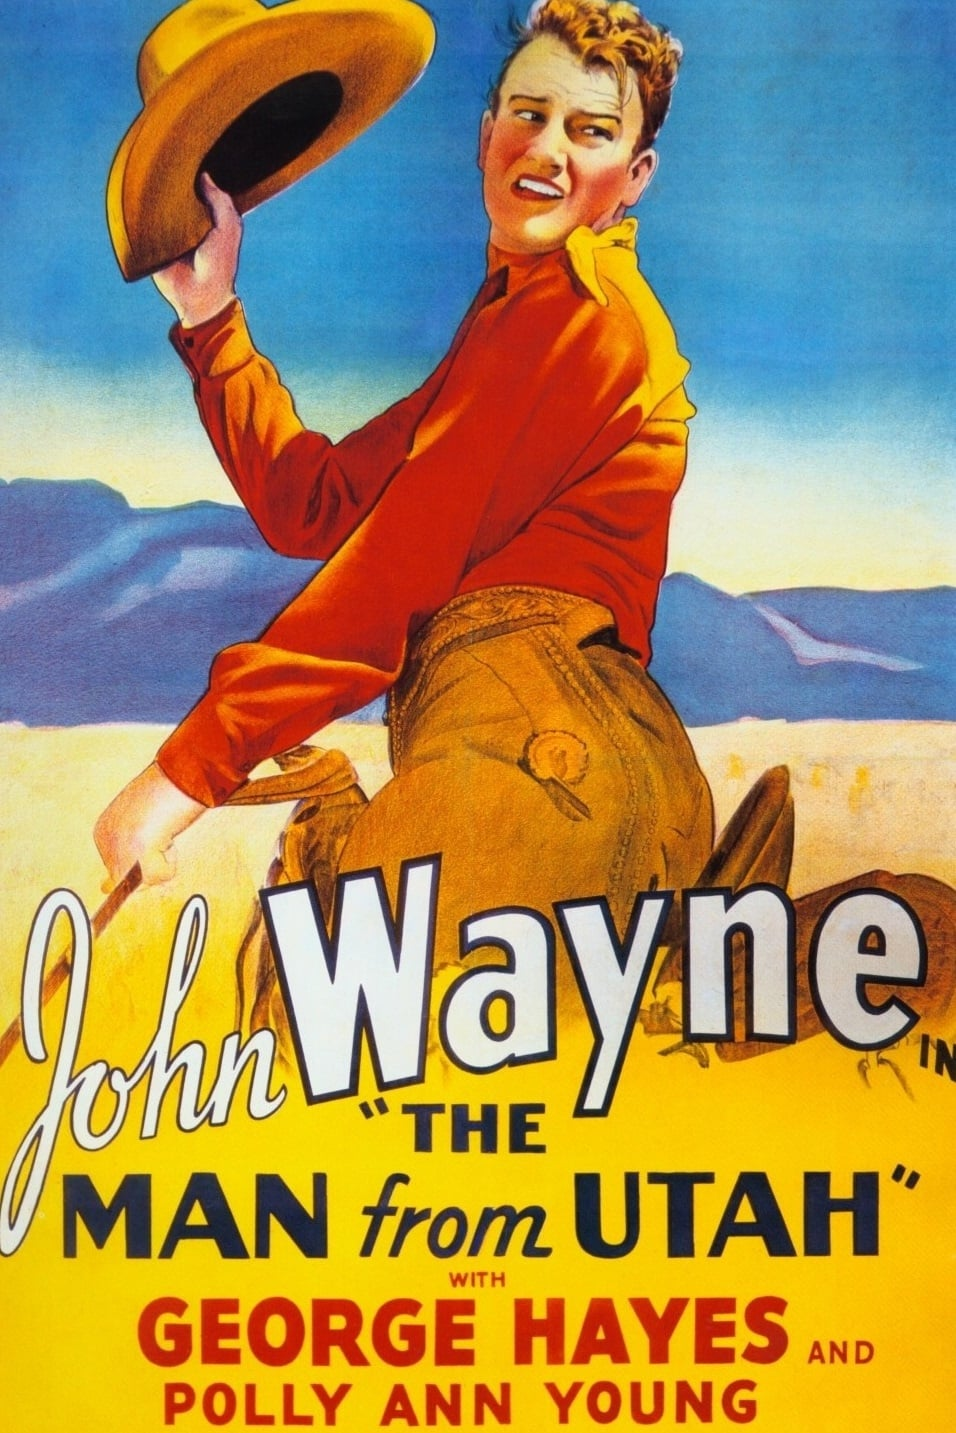 The Man From Utah (1934)